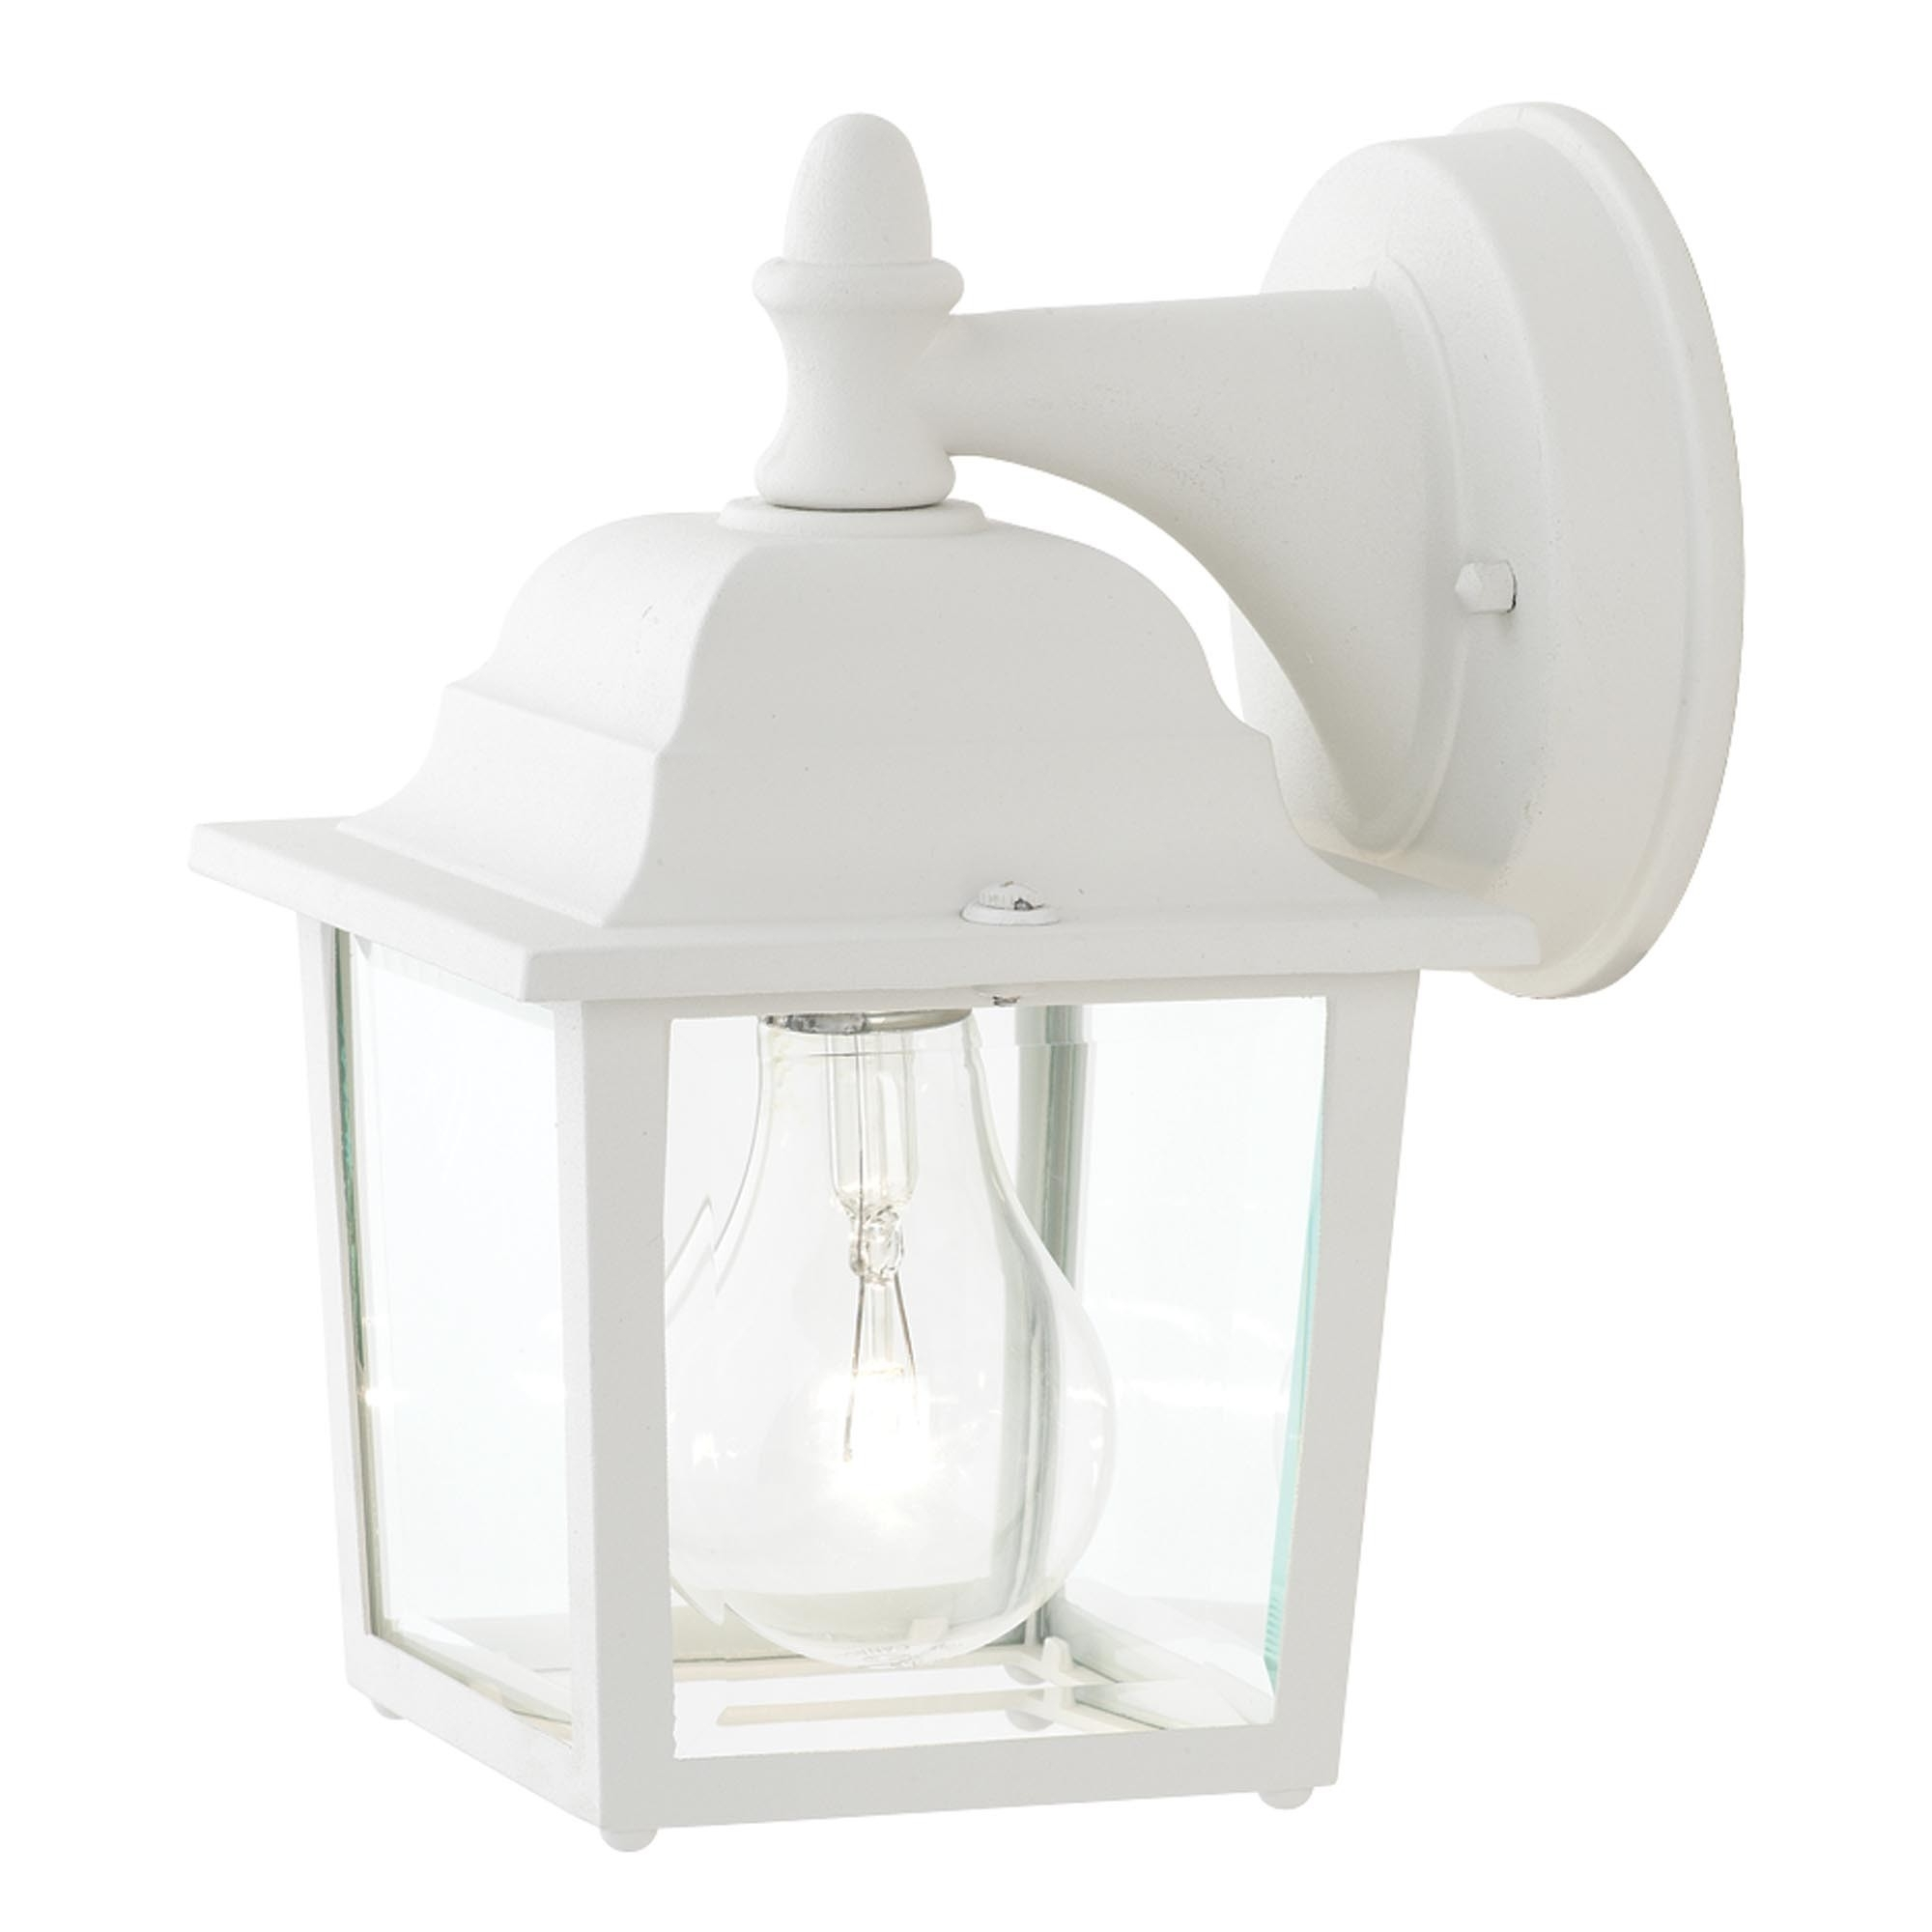 Trendy White Led Outdoor Wall Lights Intended For Light : New White Outside Wall Lights For Gas With Mount Led Light (View 12 of 20)